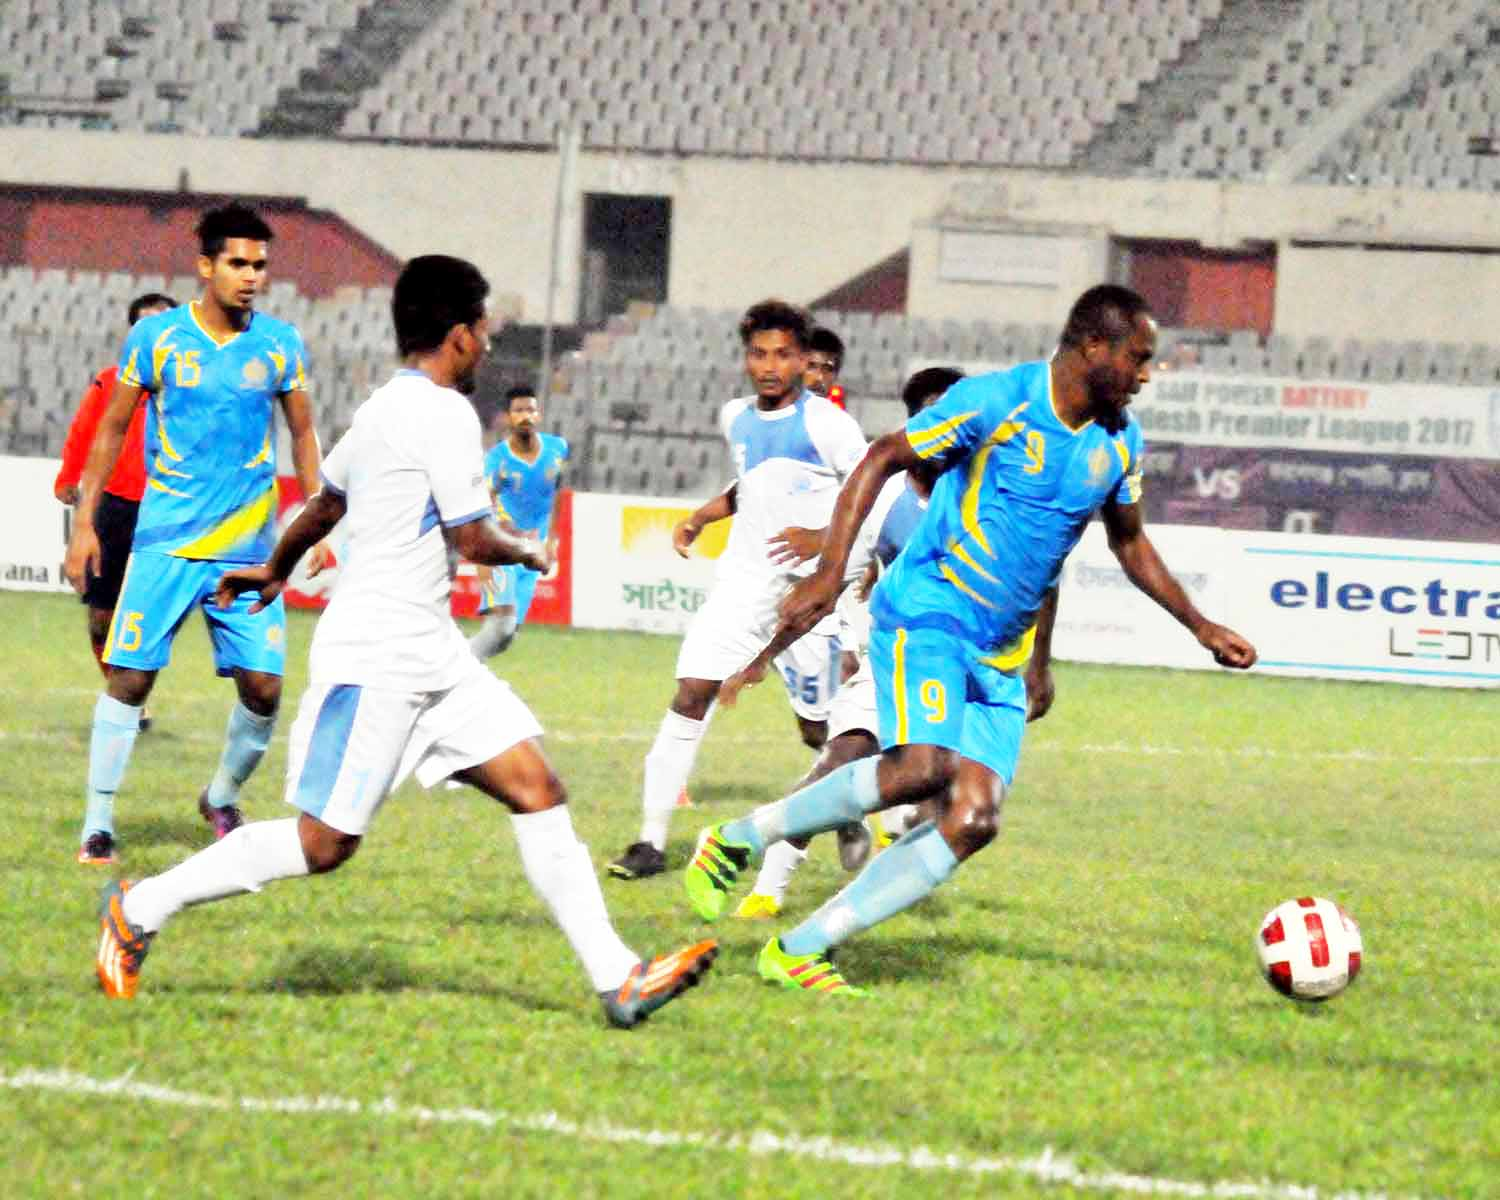 A scene from the Saif Power Battery Bangladesh Premier League 2017 match between Abahani Ltd Dhaka and Farshganj Sporting Club at the Bangabandhu National Stadium on Monday. Abahani won the match 2-1.